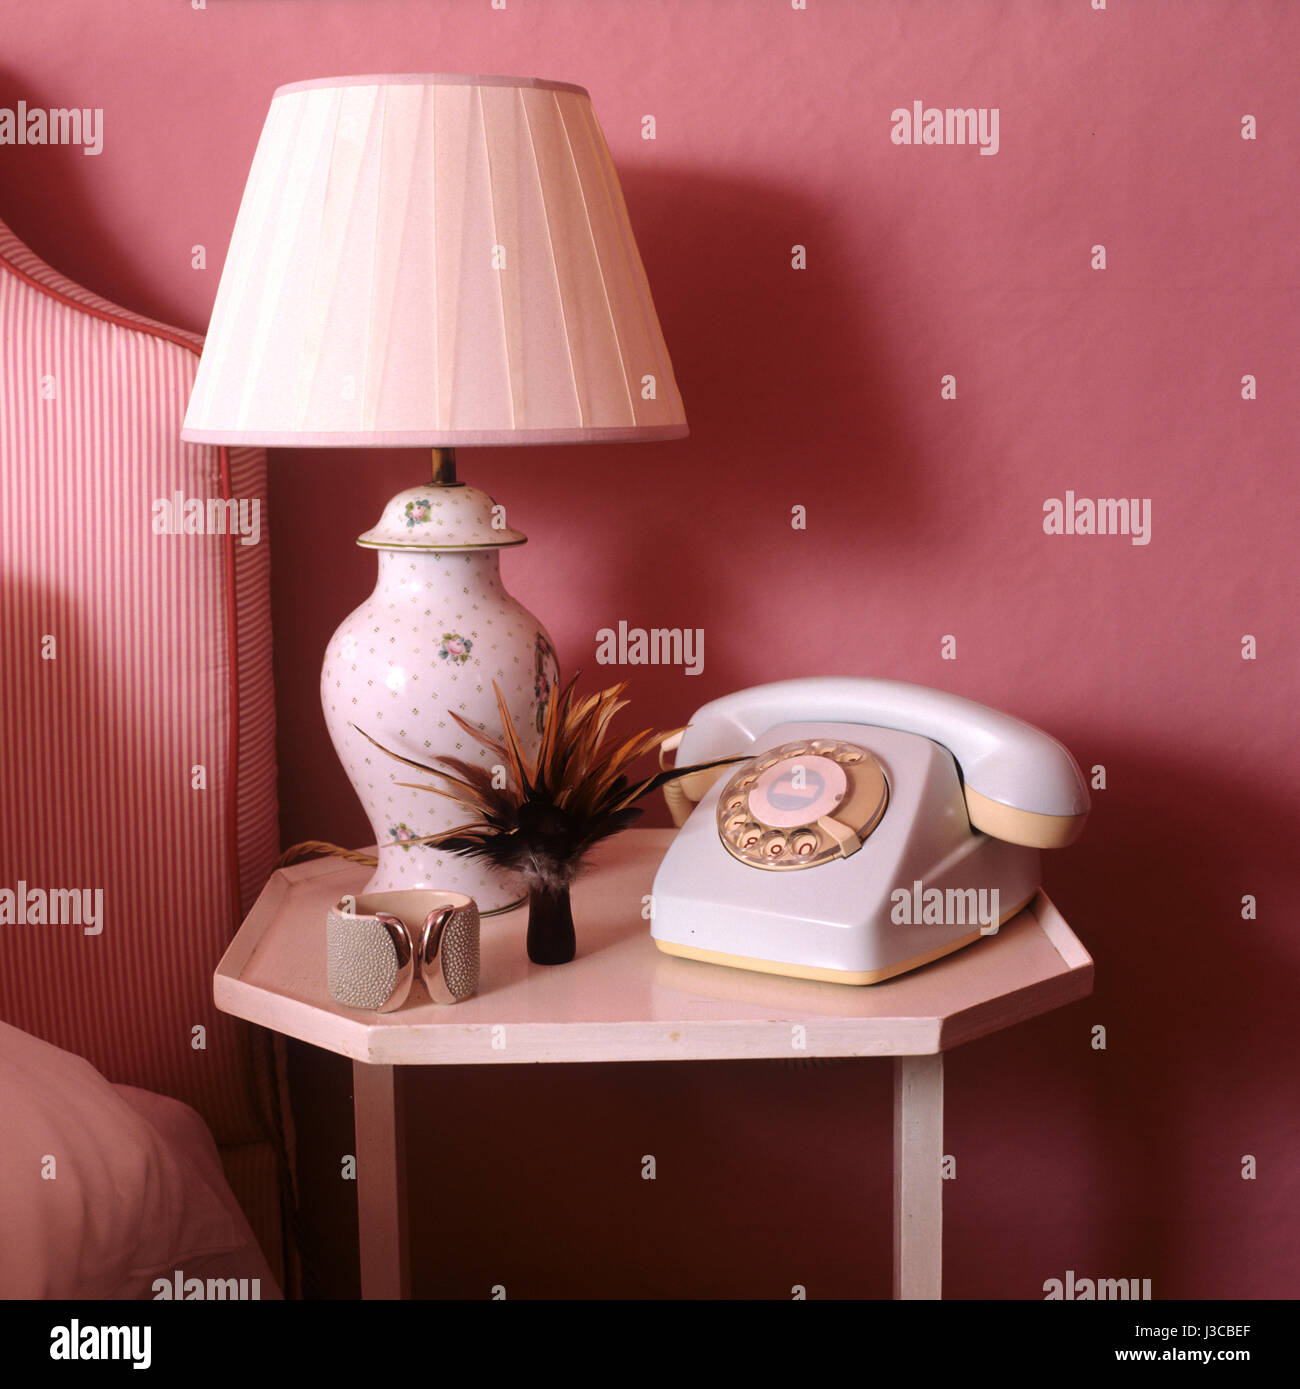 Lamp and rotary dial telephone on bedside table - Stock Image